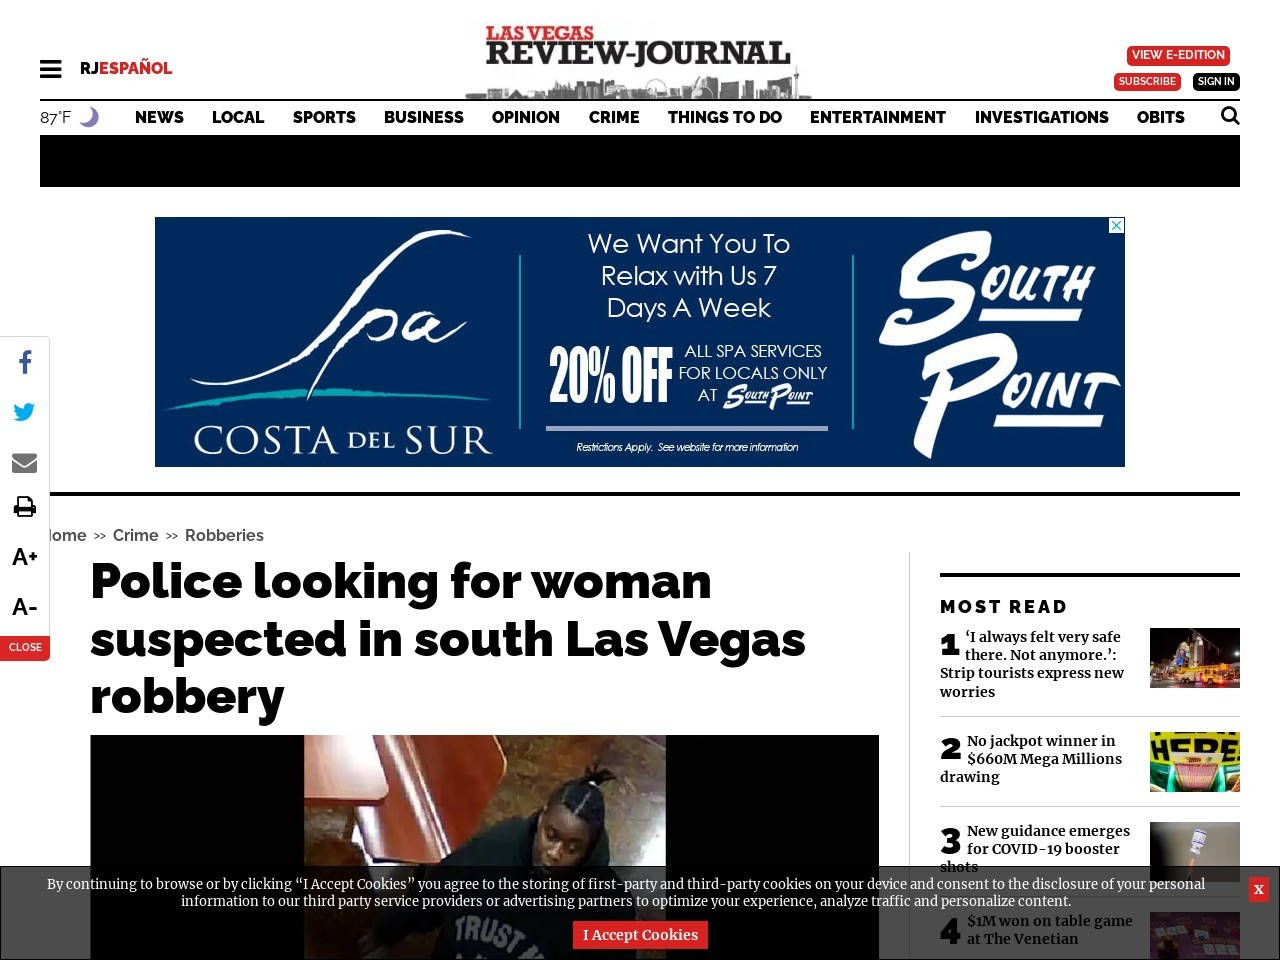 Police looking for woman suspected in south Las Vegas robbery